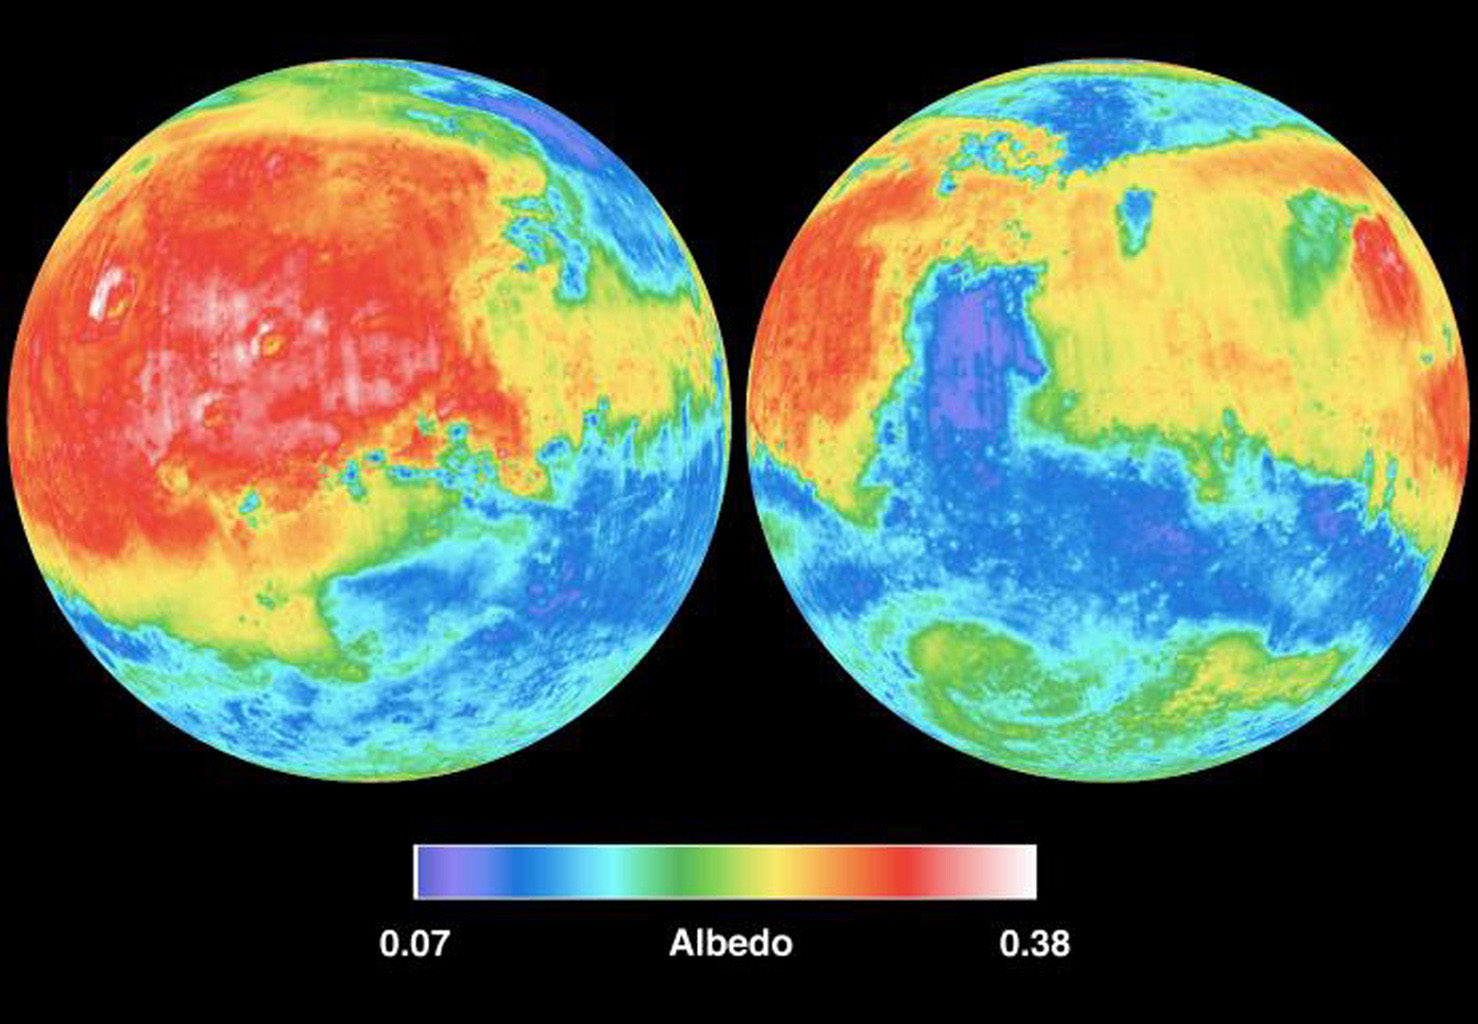 NASA's Mars Global Surveyor shows two views of Mars derived from MGS Thermal Emission Spectrometer measurements of global broadband (0.3 - ~3.0 microns) visible and near-infrared reflectance, also known as albedo.